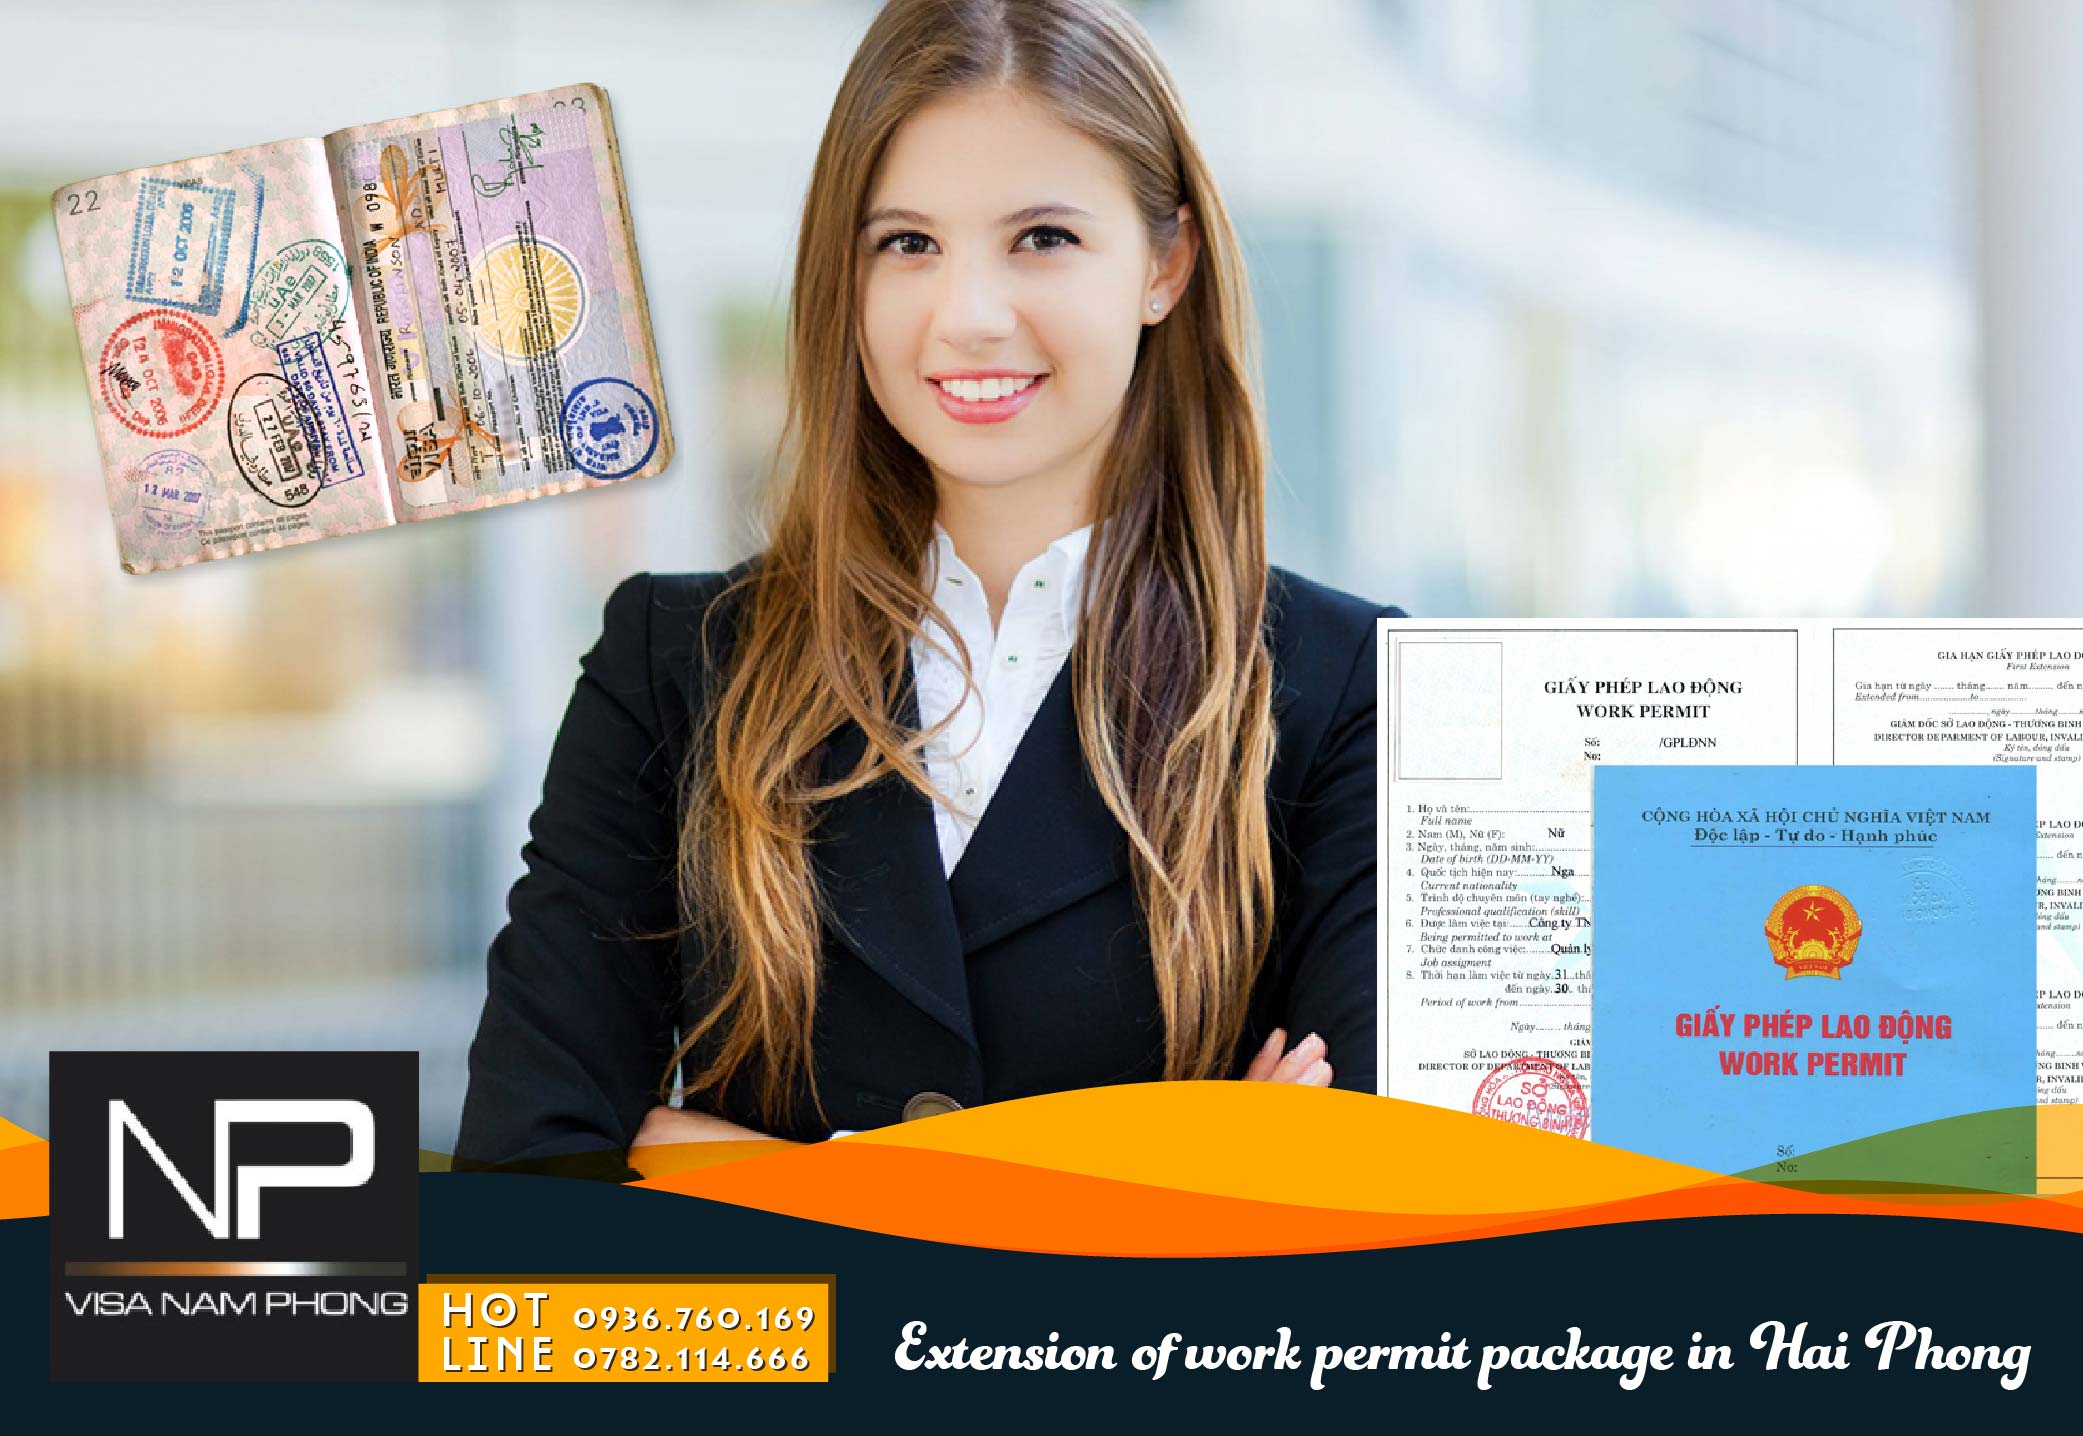 Extension of work permit package in Hai Phong